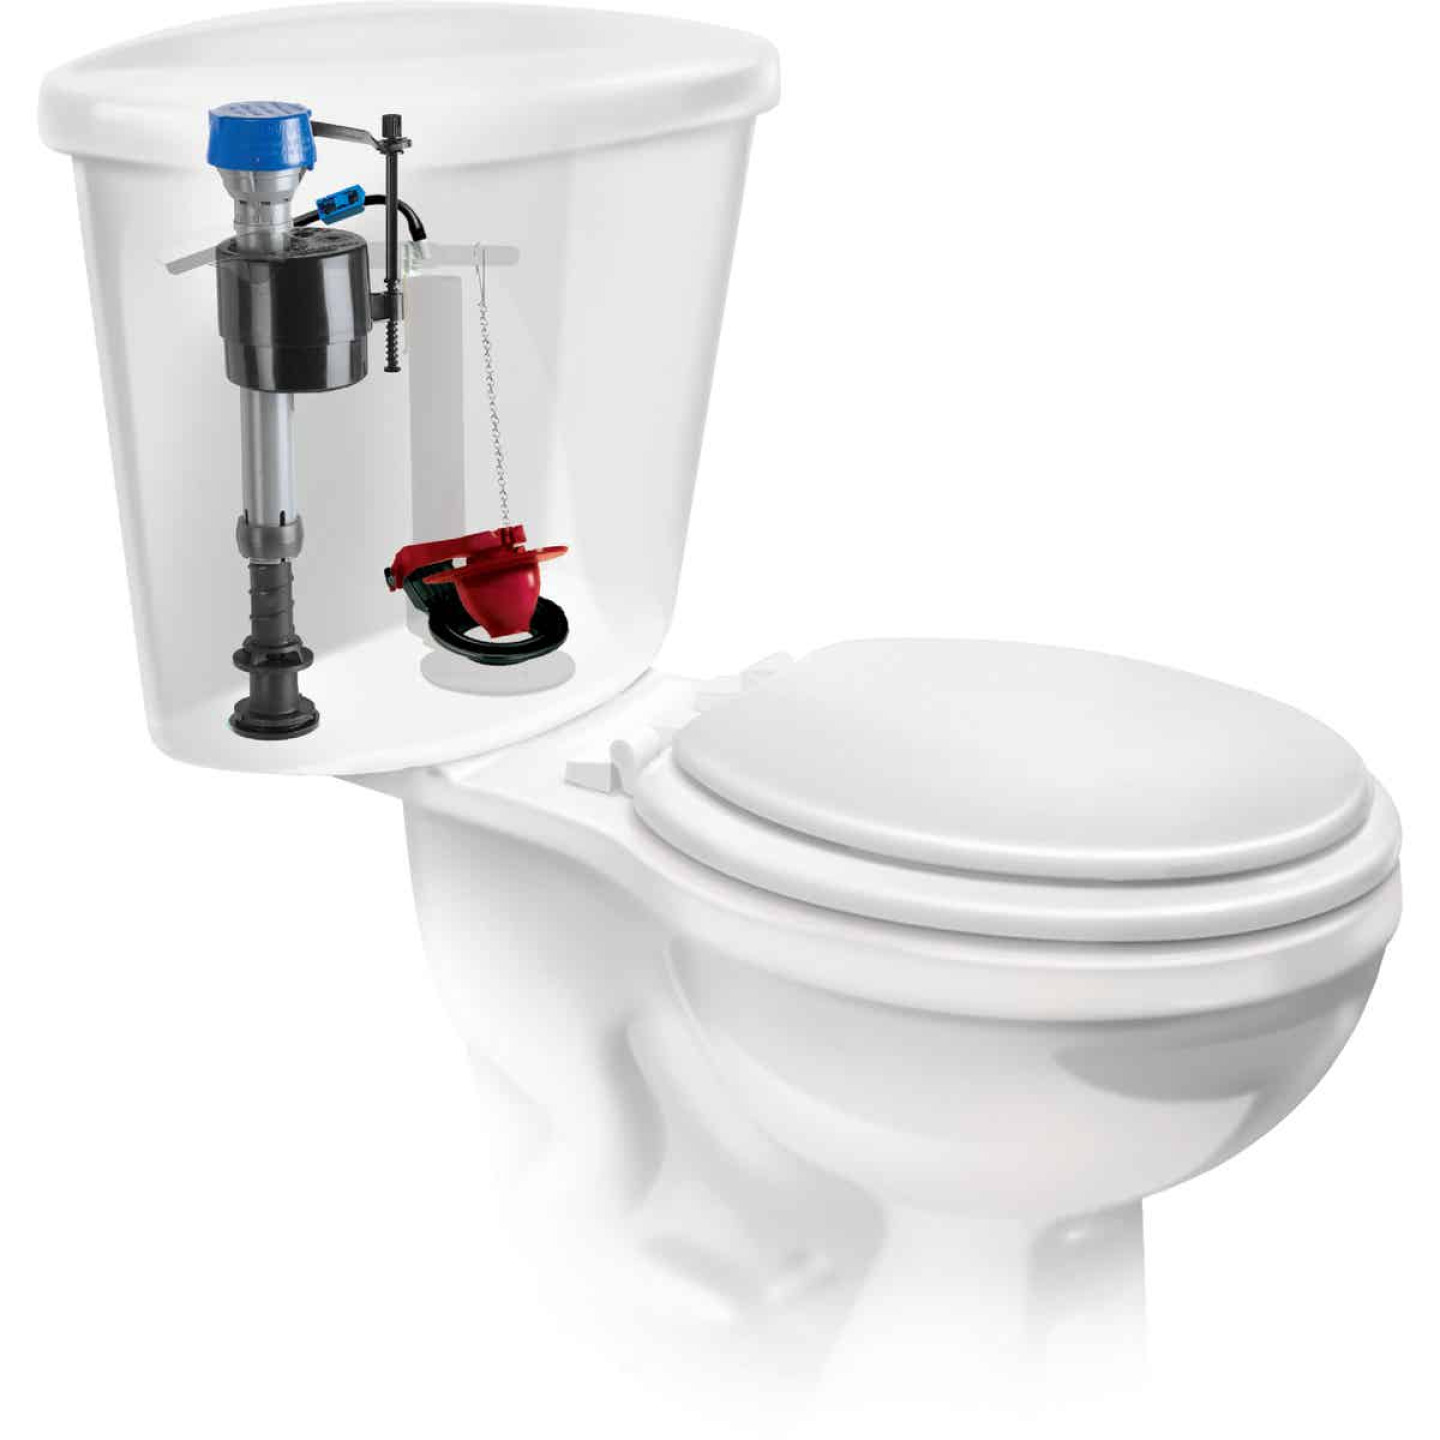 Fluidmaster PerforMAX Fill Valve & 2 In. Flush Valve Toilet Repair Kit Image 5